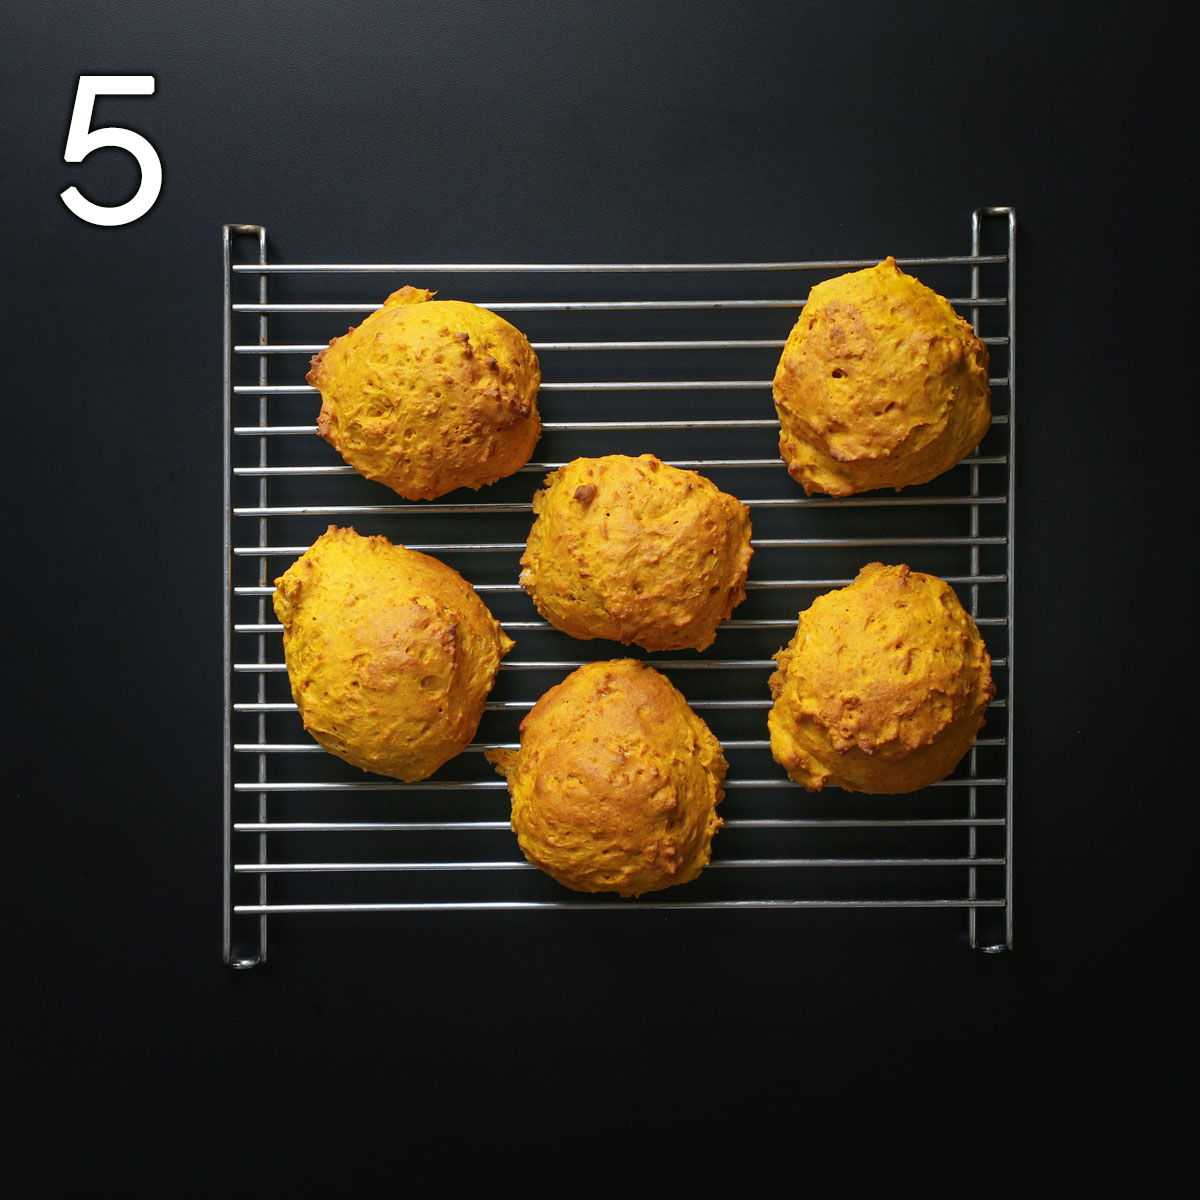 biscuits cooling on wire rack.